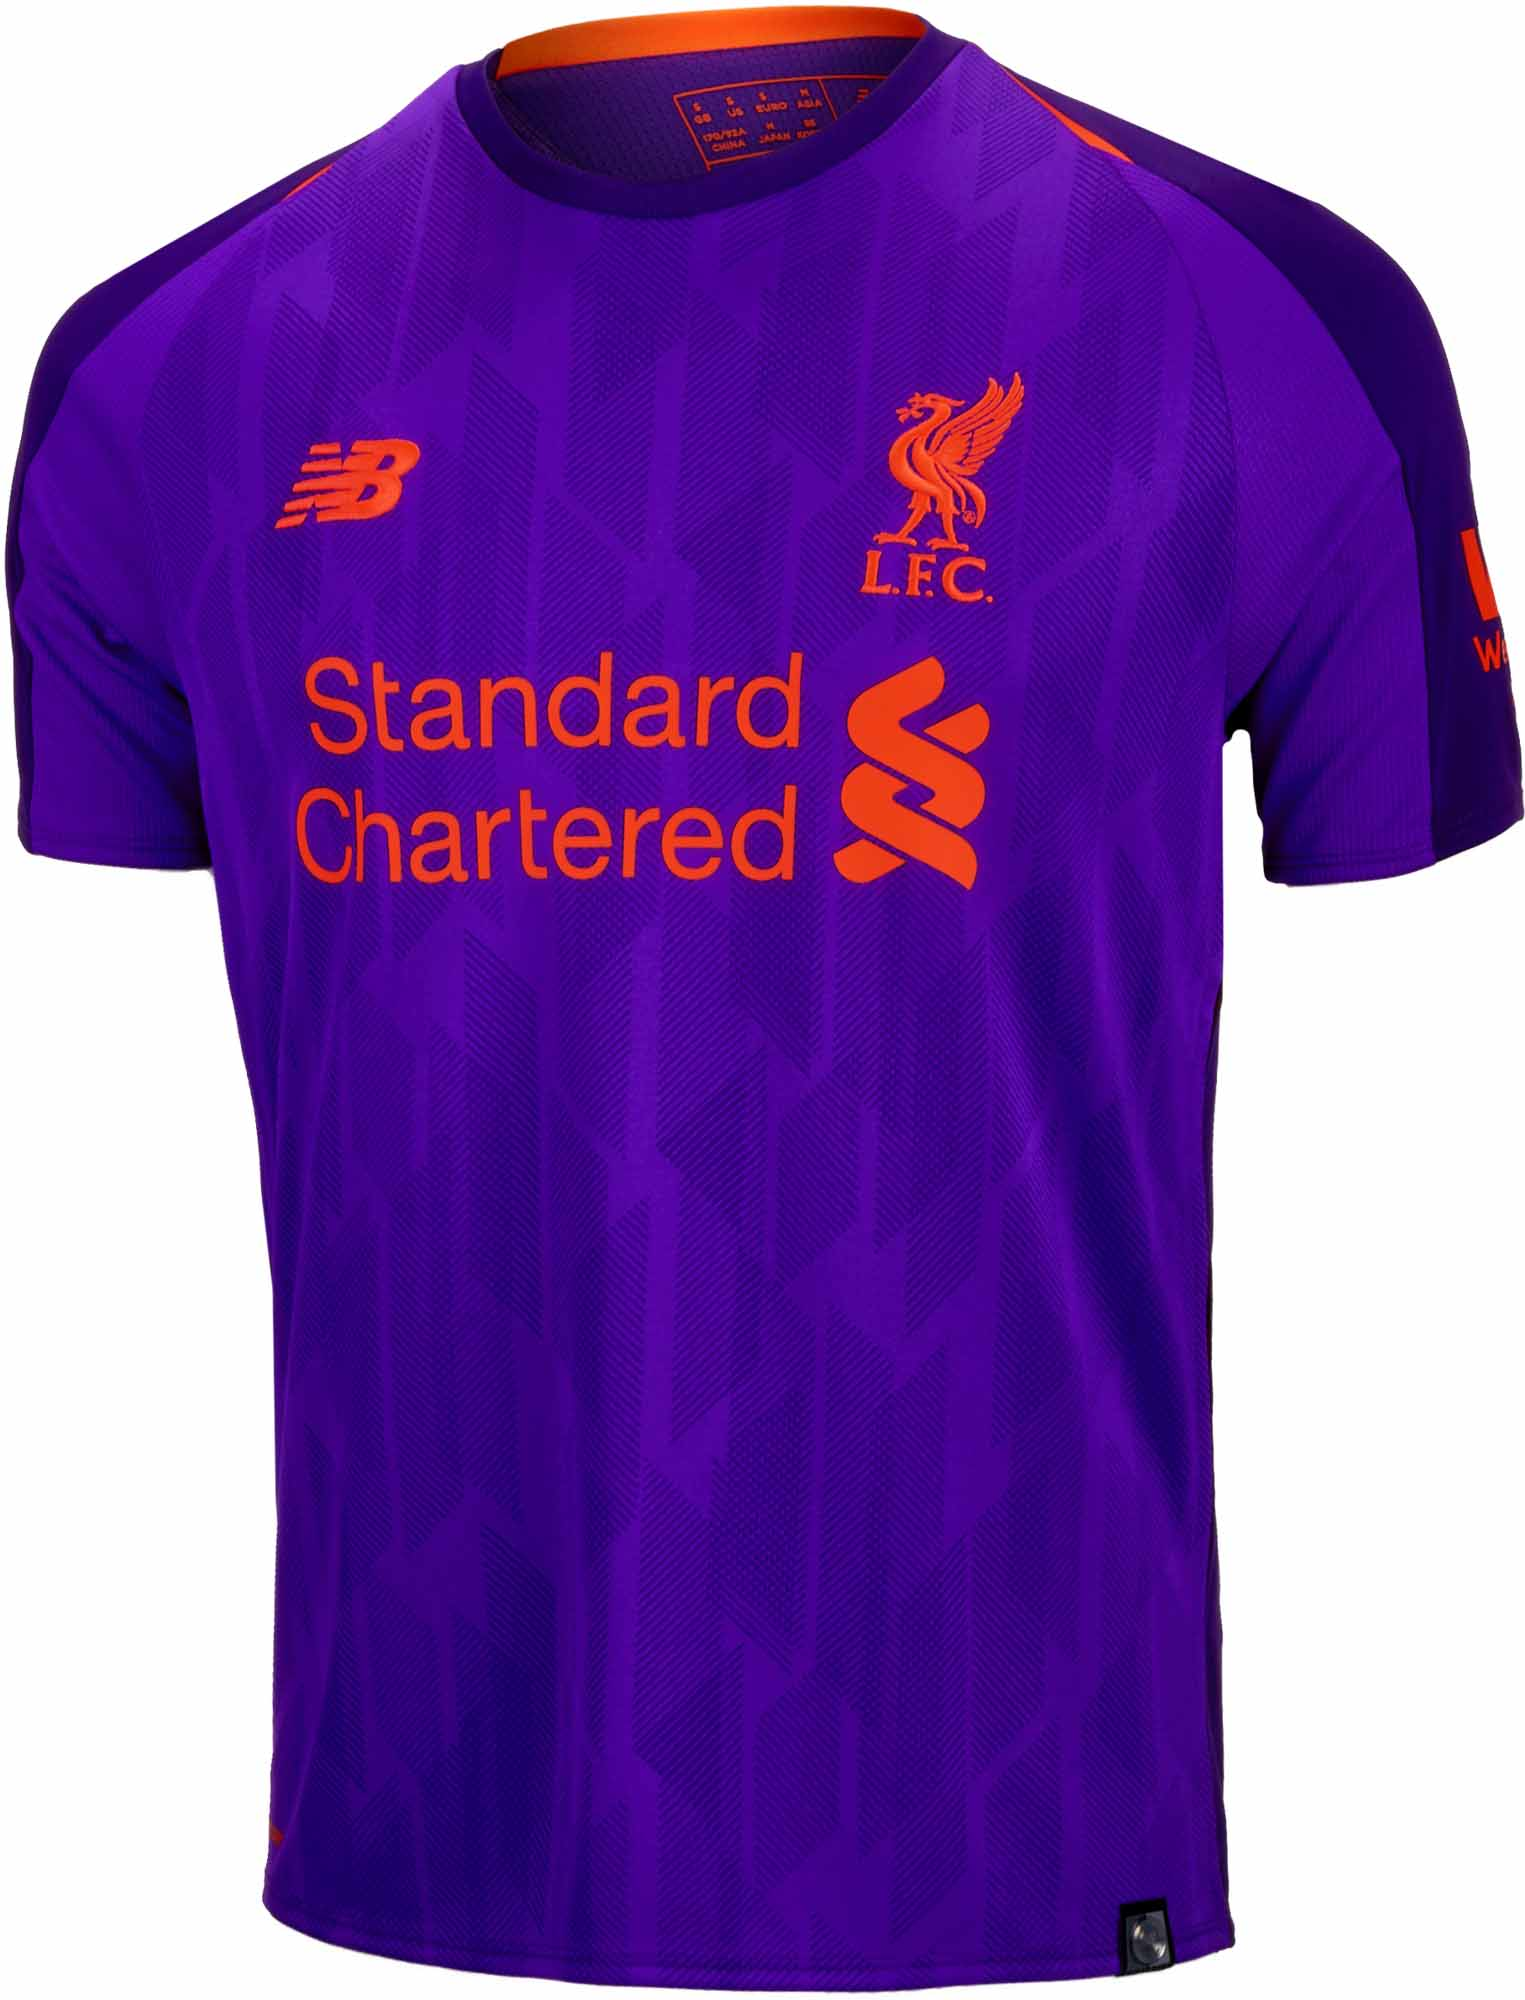 4917ad9333a43 2018/19 Kids New Balance Liverpool Away Jersey - SoccerPro